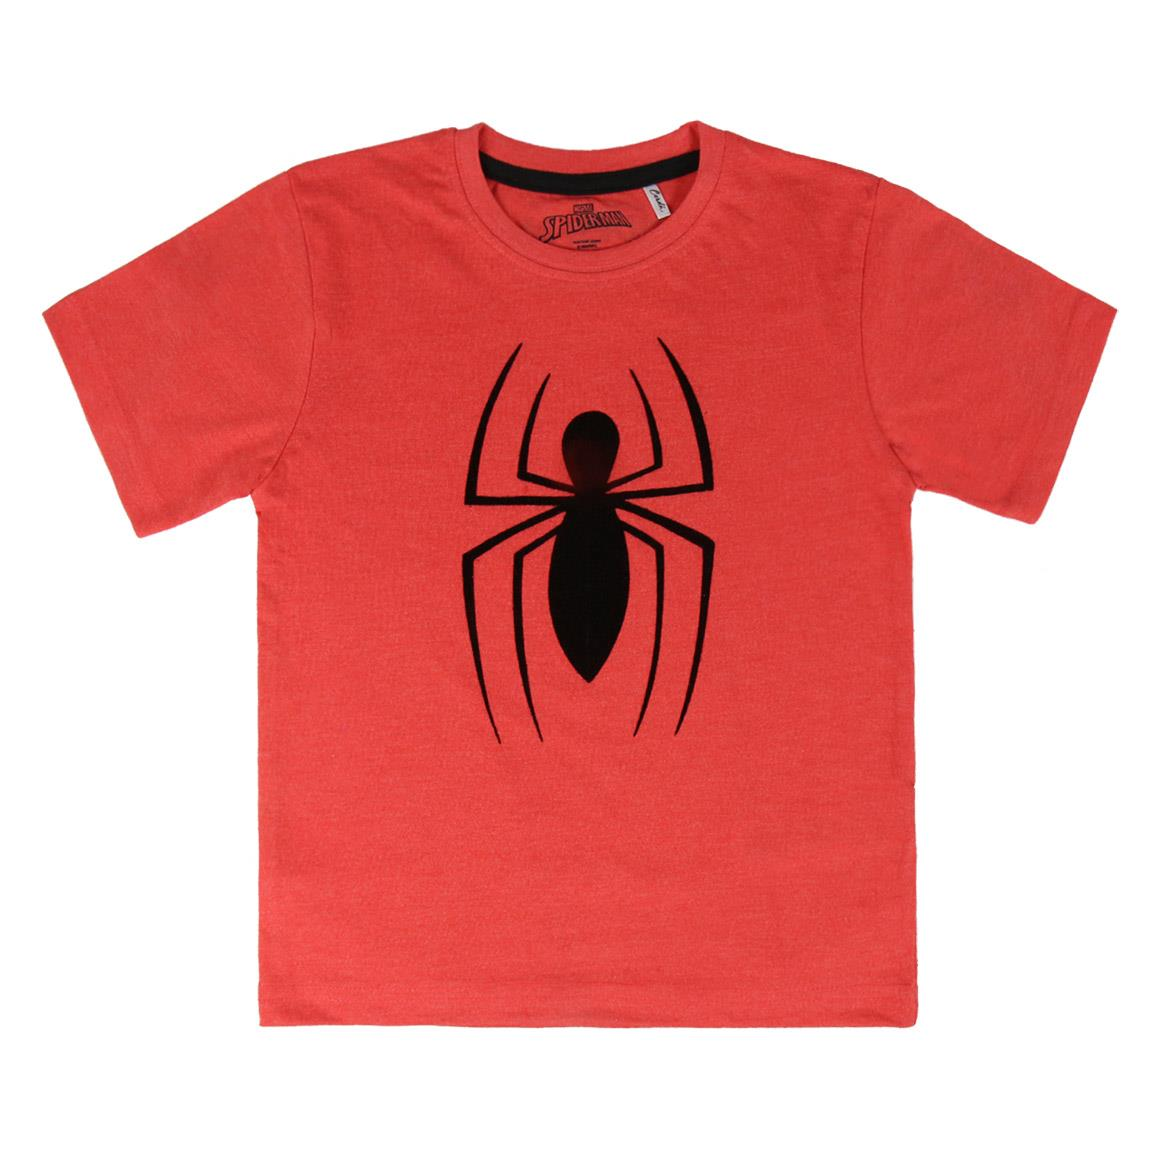 Tee Shirt Enfant Spiderman